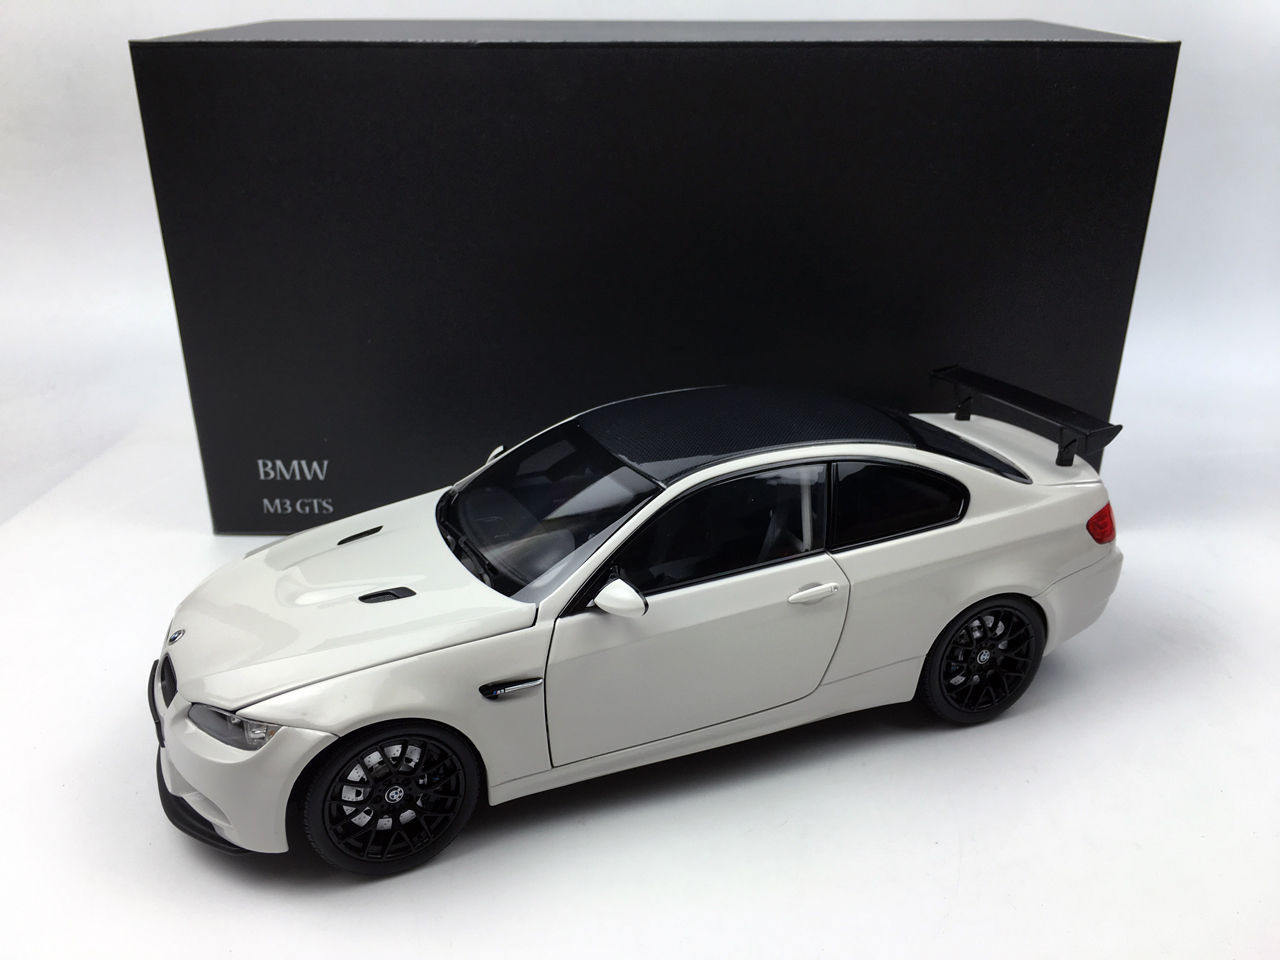 kyosho 1/18 scale bmw m3 gts 25 years anniversary alpine white